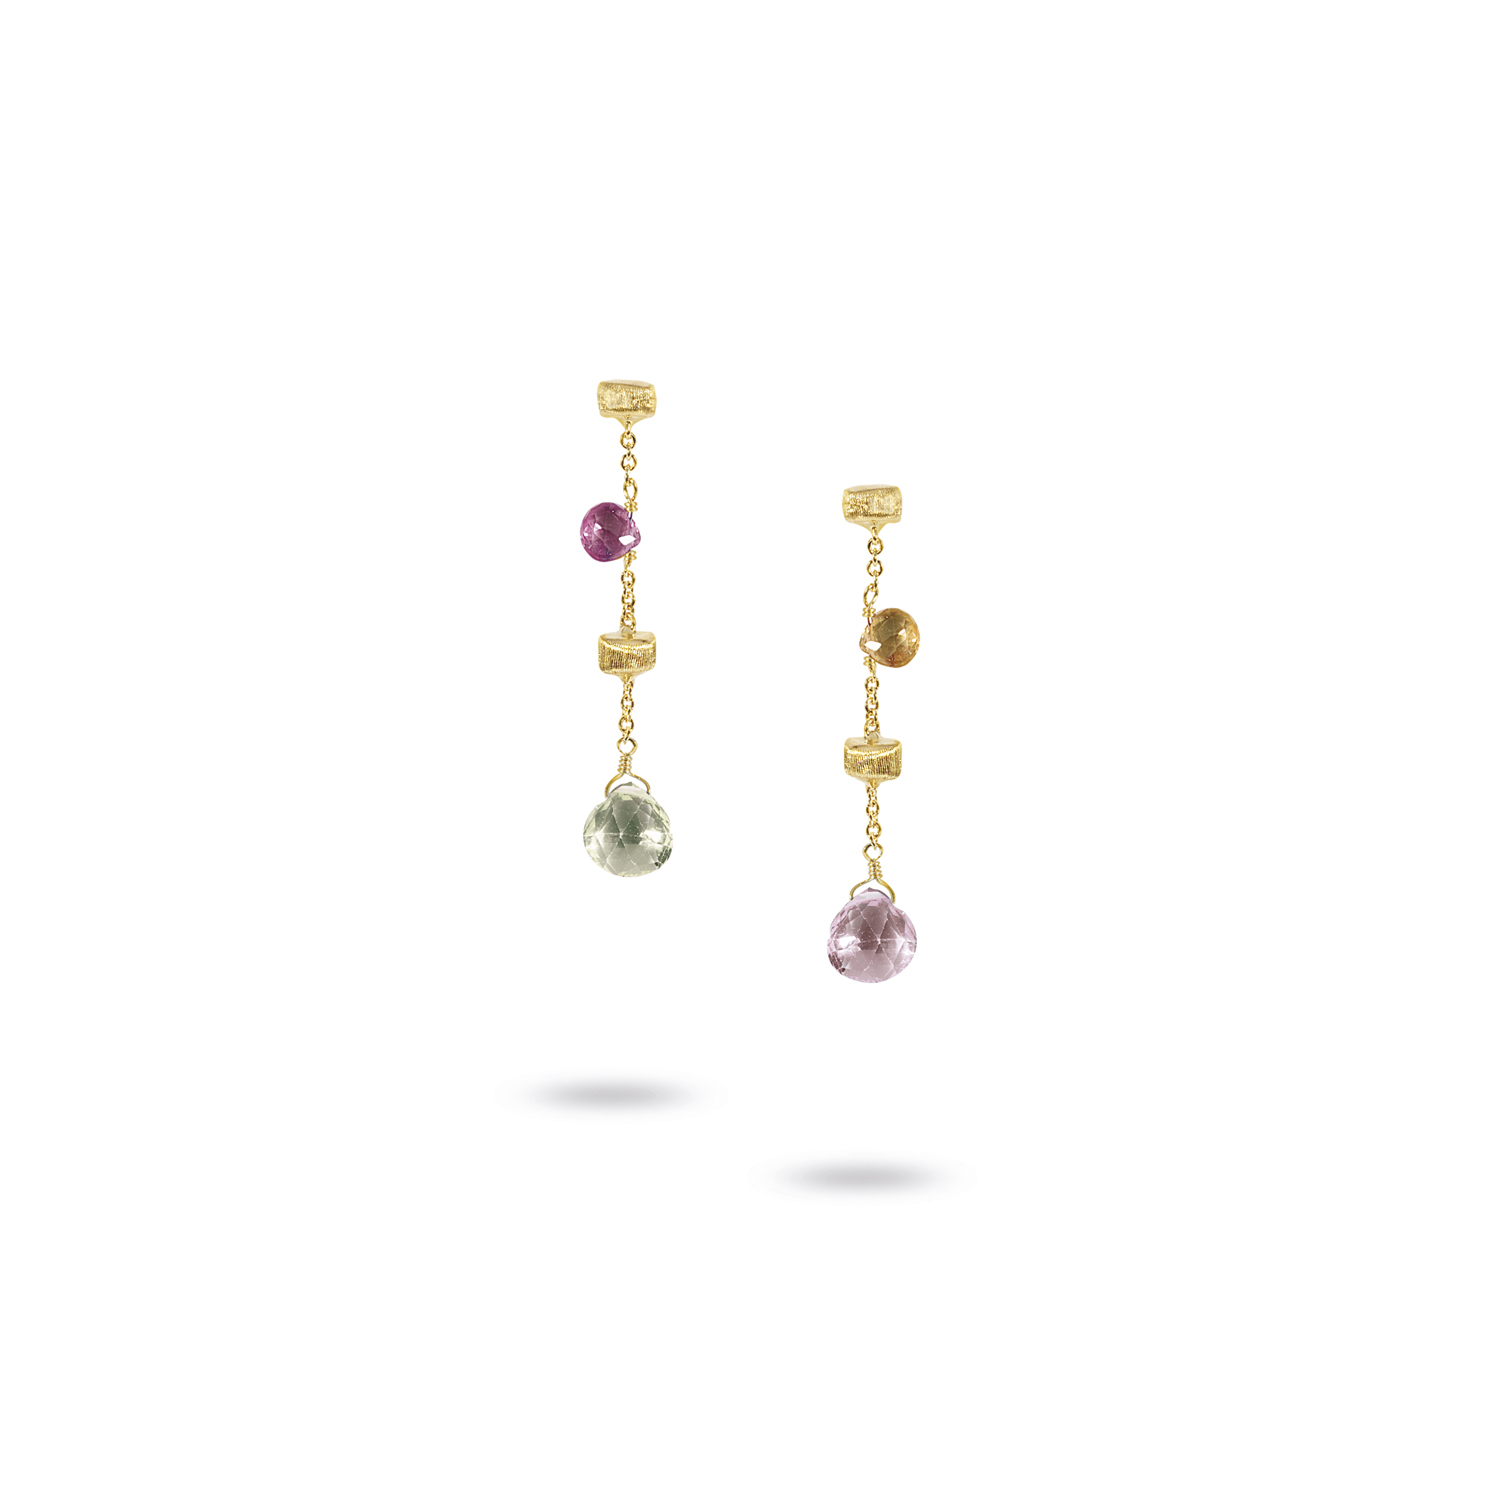 Marco Bicego Ohrhänger Paradise 18ct.Gelbgold OB580- MIX01